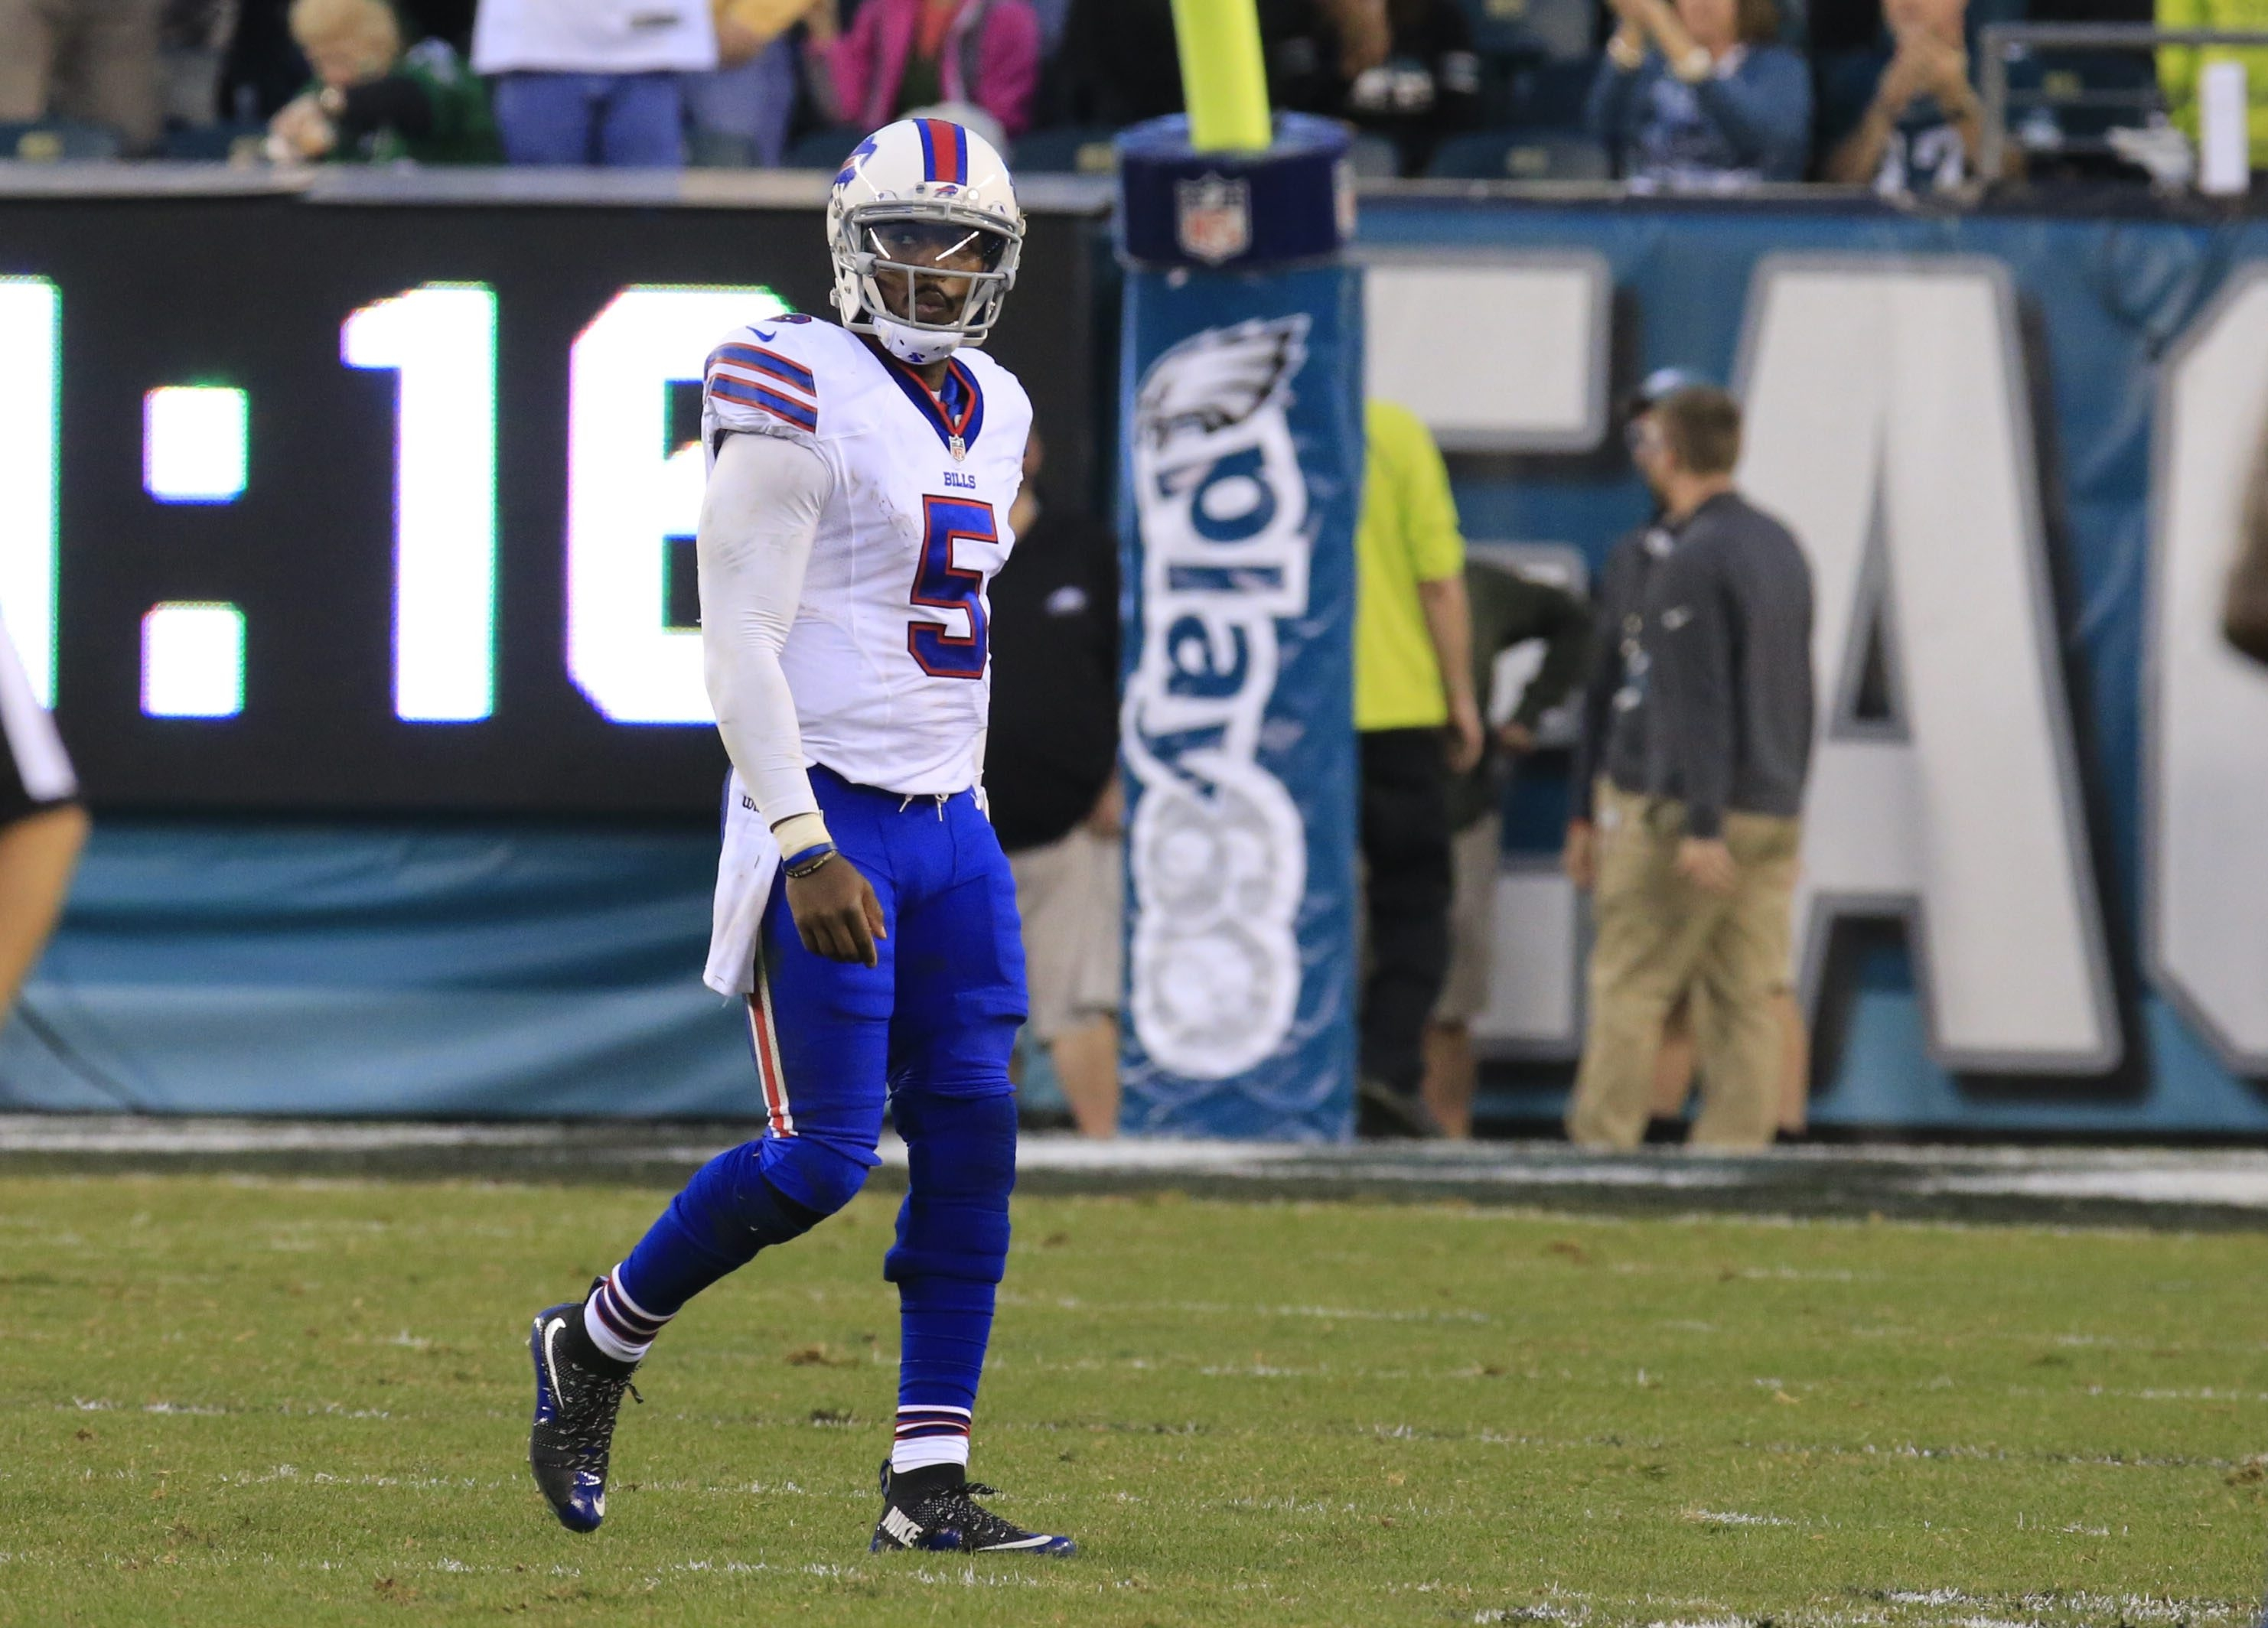 Tyrod Taylor has led the Bills to one fourth-quarter comeback win in five tries, against Tennessee back on Oct. 11.